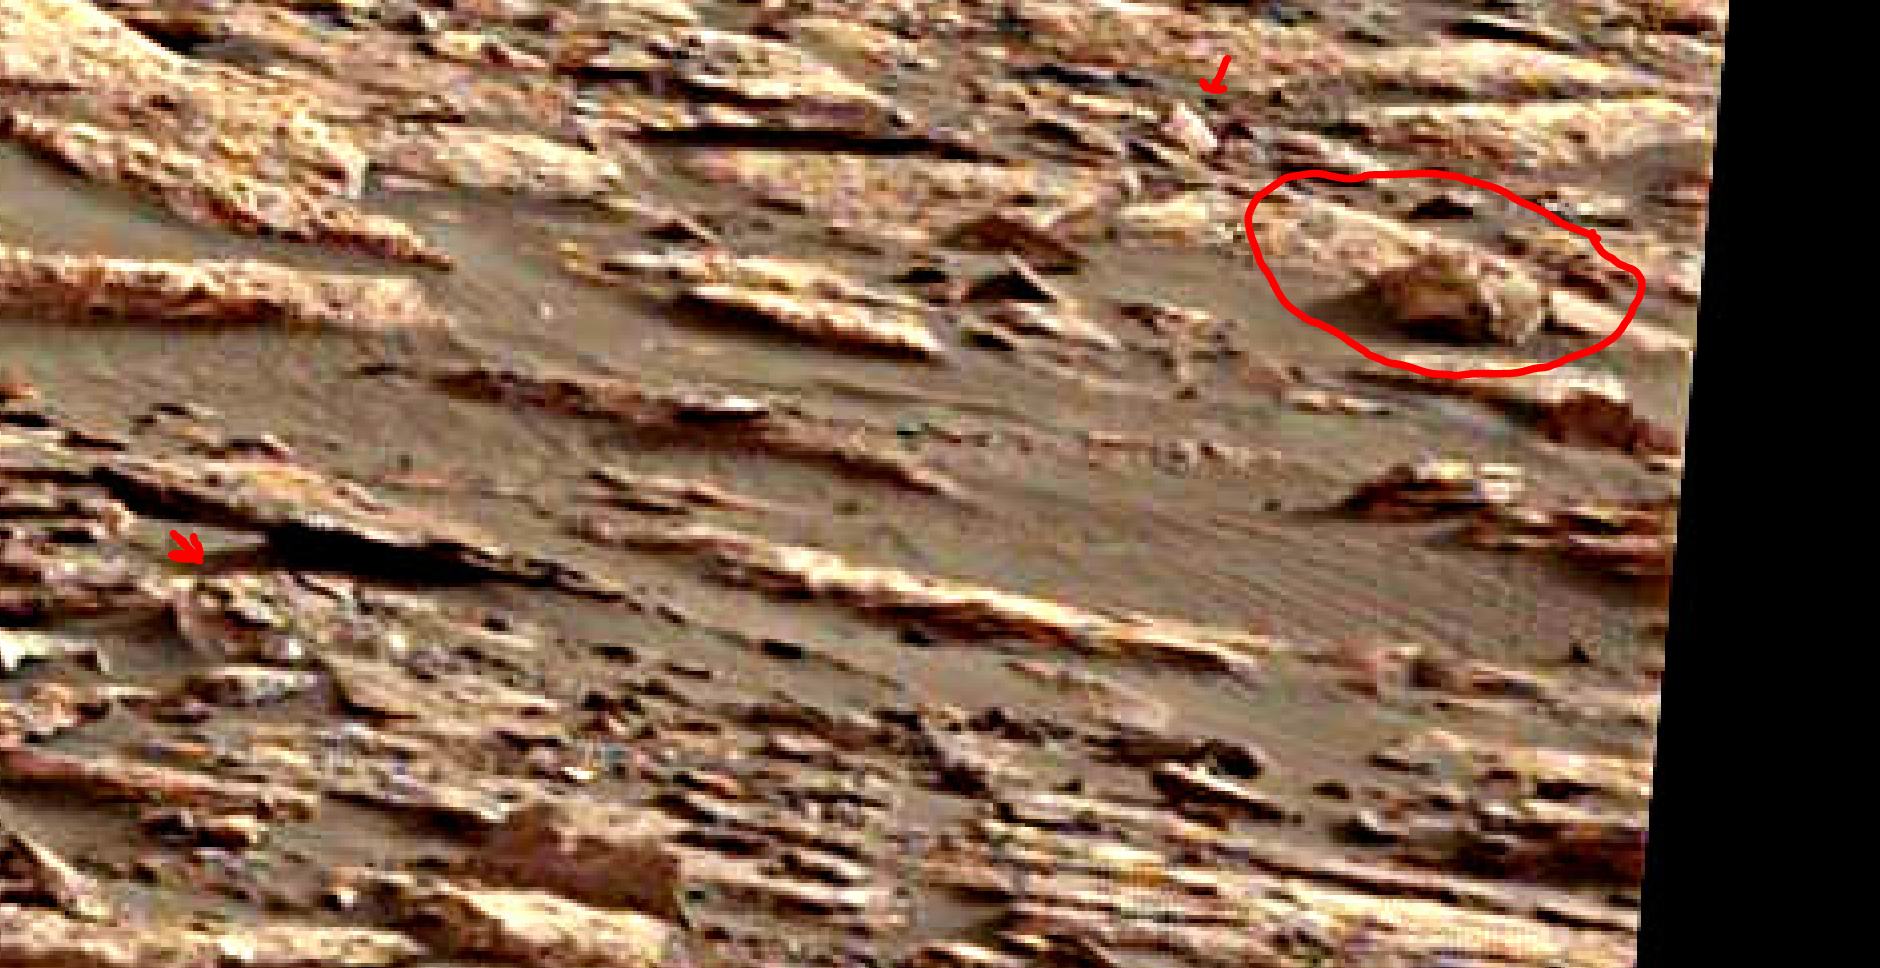 mars-sol-1512-anomaly-artifacts-13-was-life-on-mars